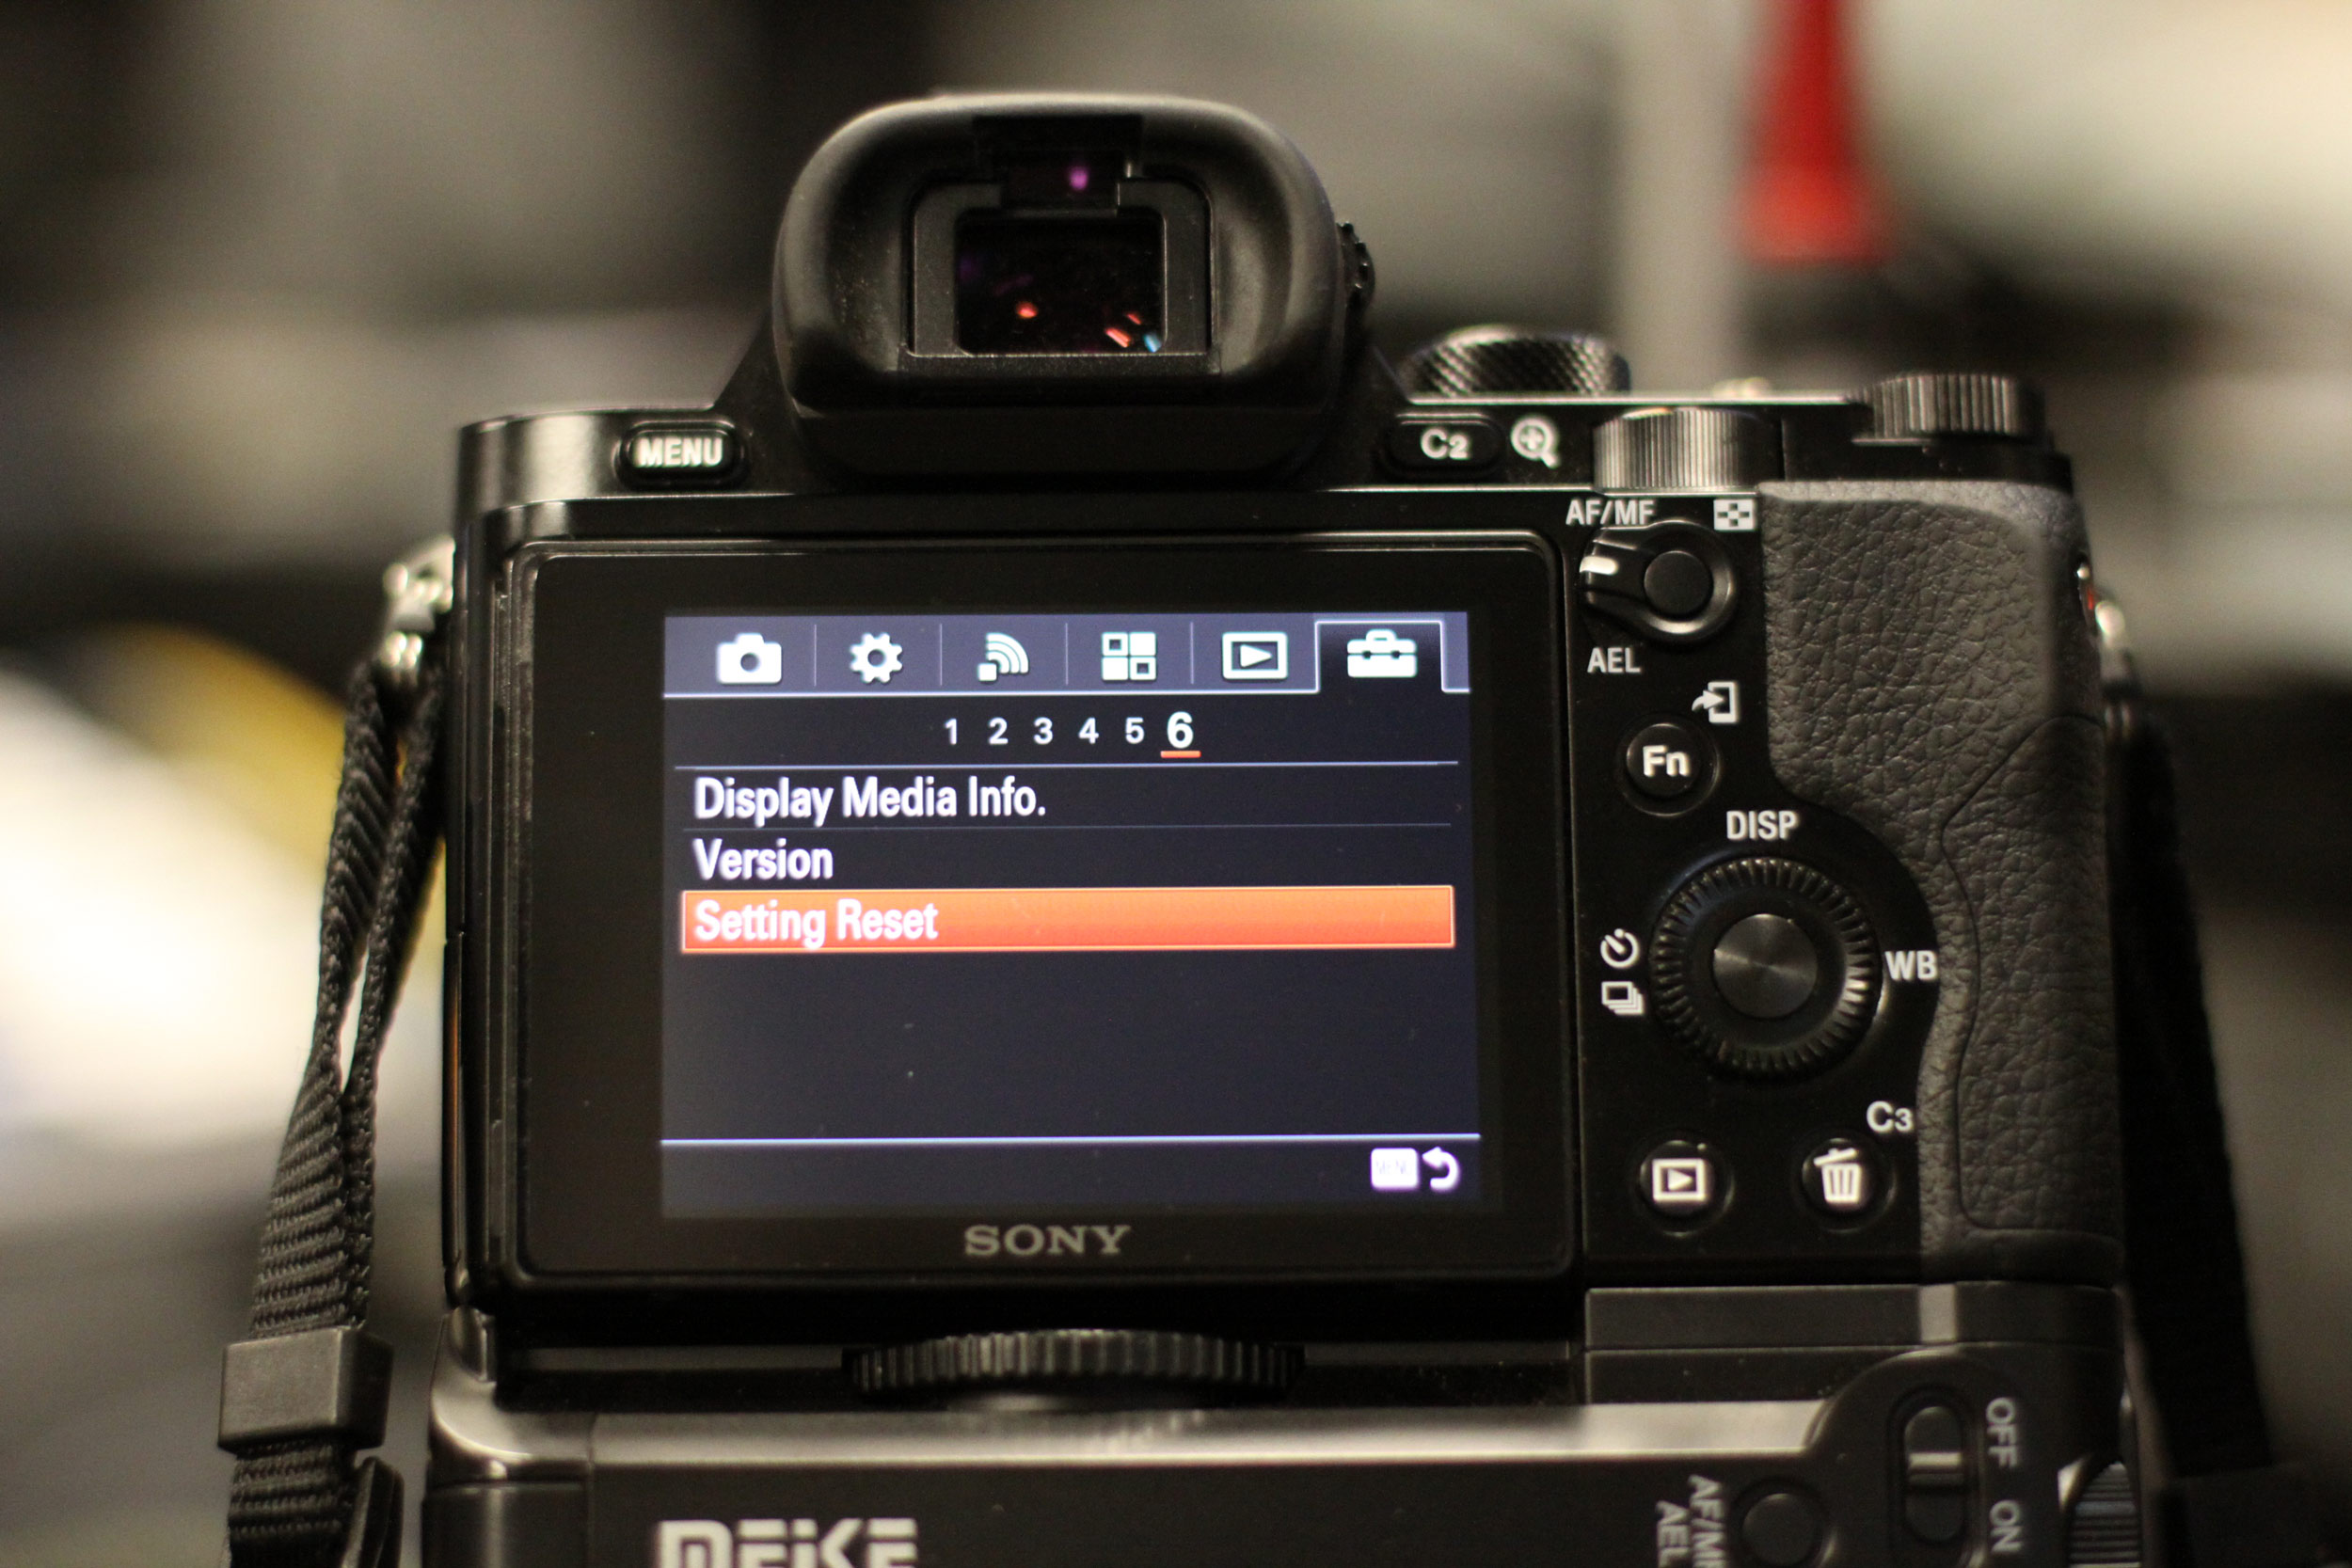 Sony A7 Settings are Stuck? Here's a Possible Fix